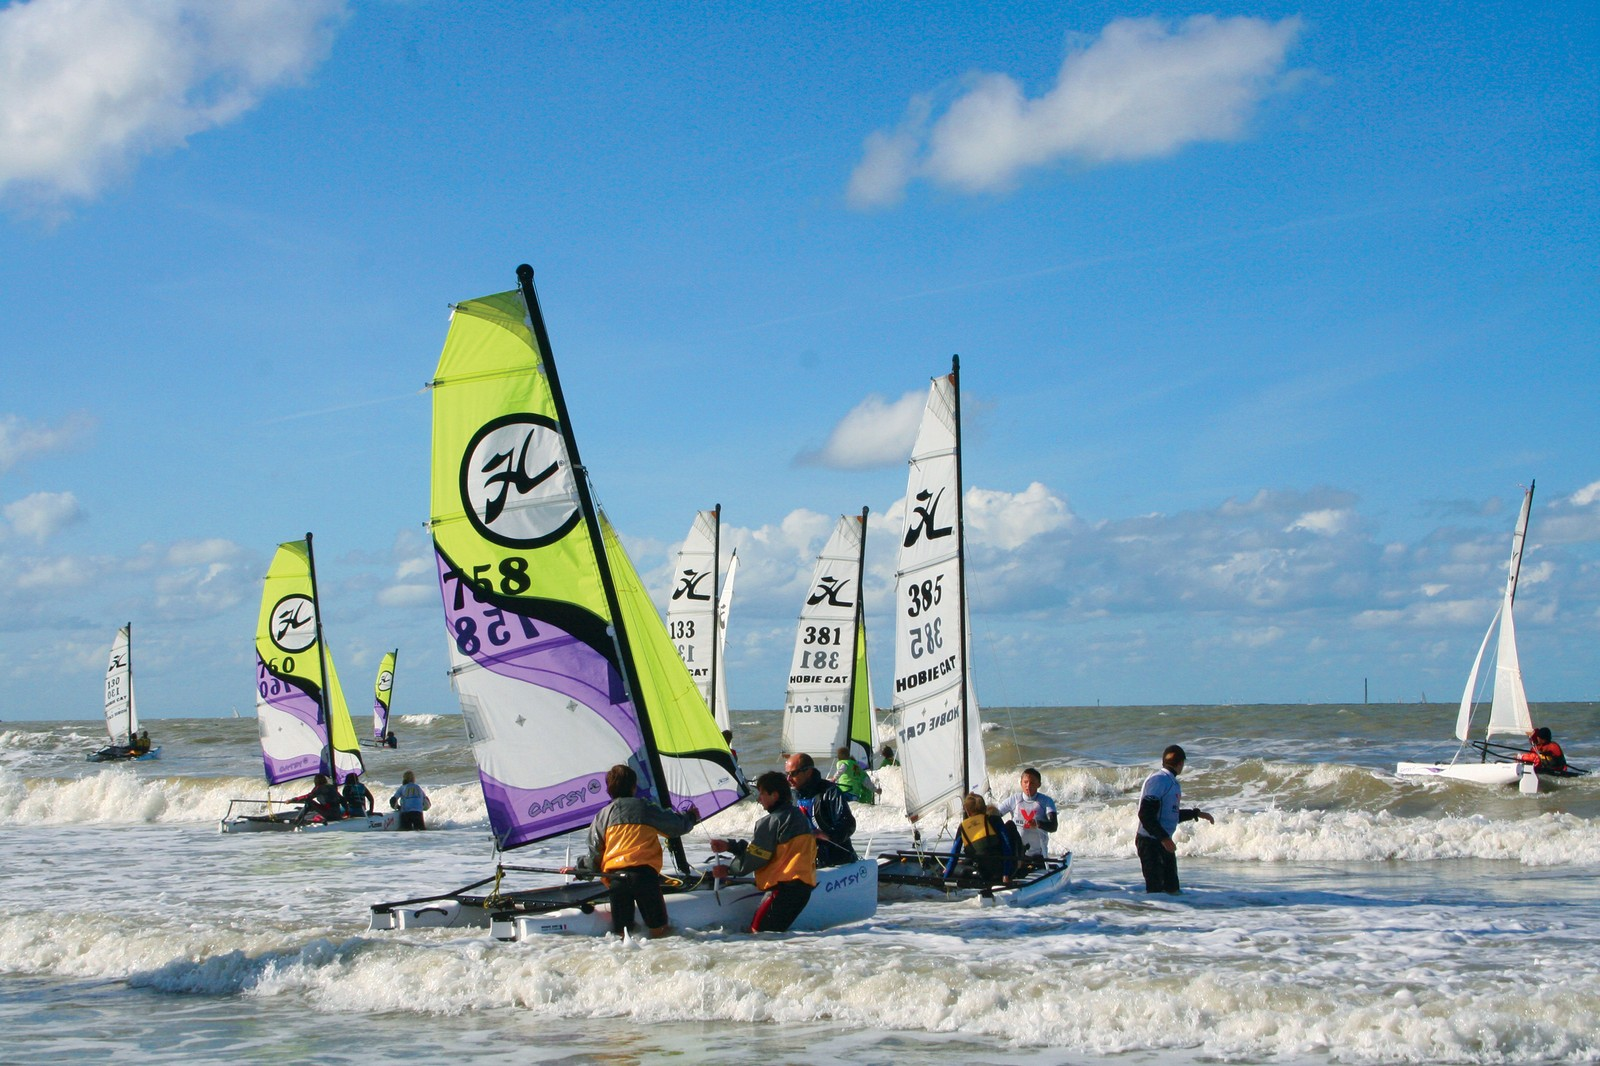 Welcome to Hobie Cat Southern Africa